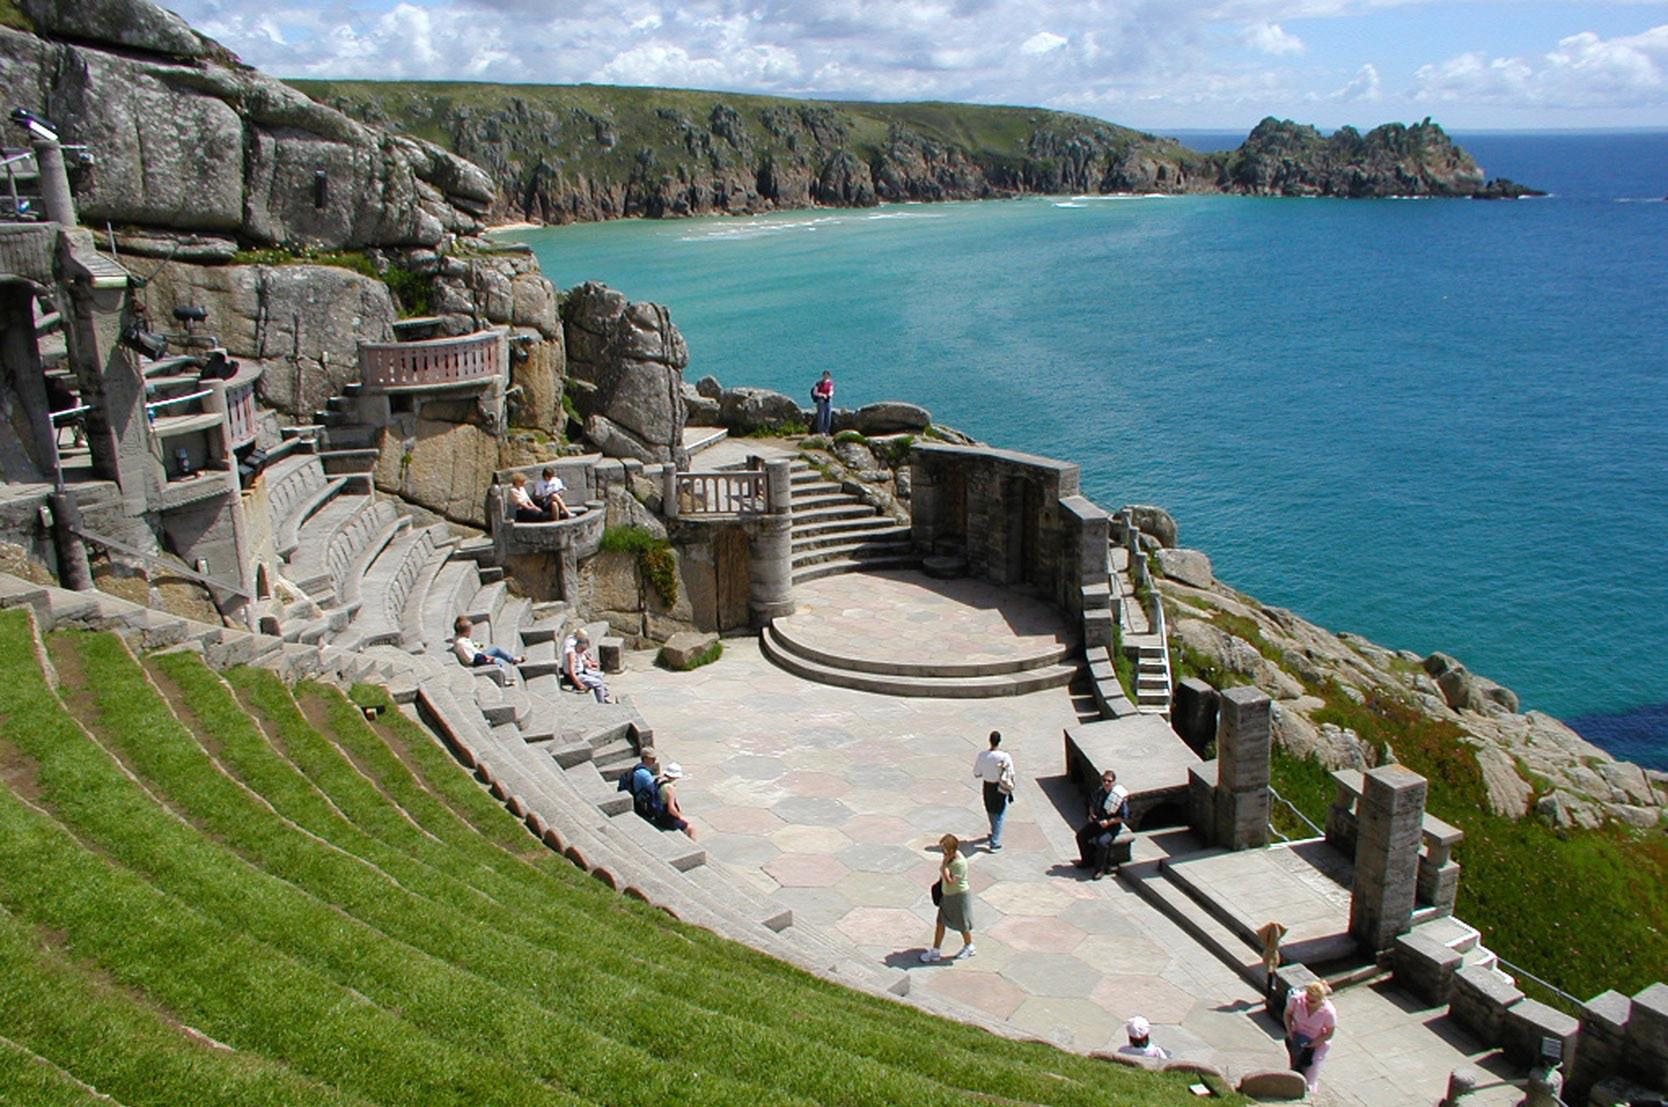 Porthcurno Camping – Campsites near Porthcurno, Cornwall